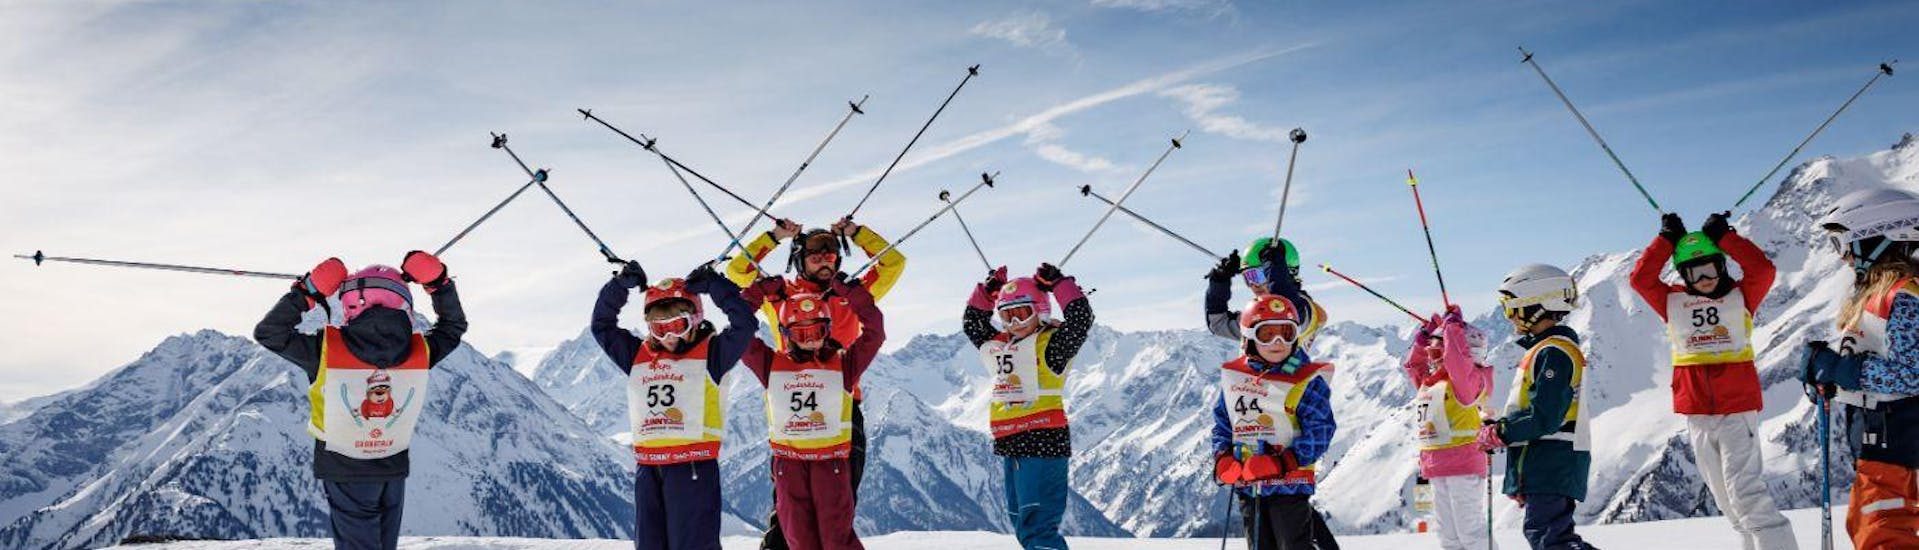 """Kids Ski Lessons """"All In One"""" (4-14 y.) for Beginners with Skischule Sunny Finkenberg - Hero image"""